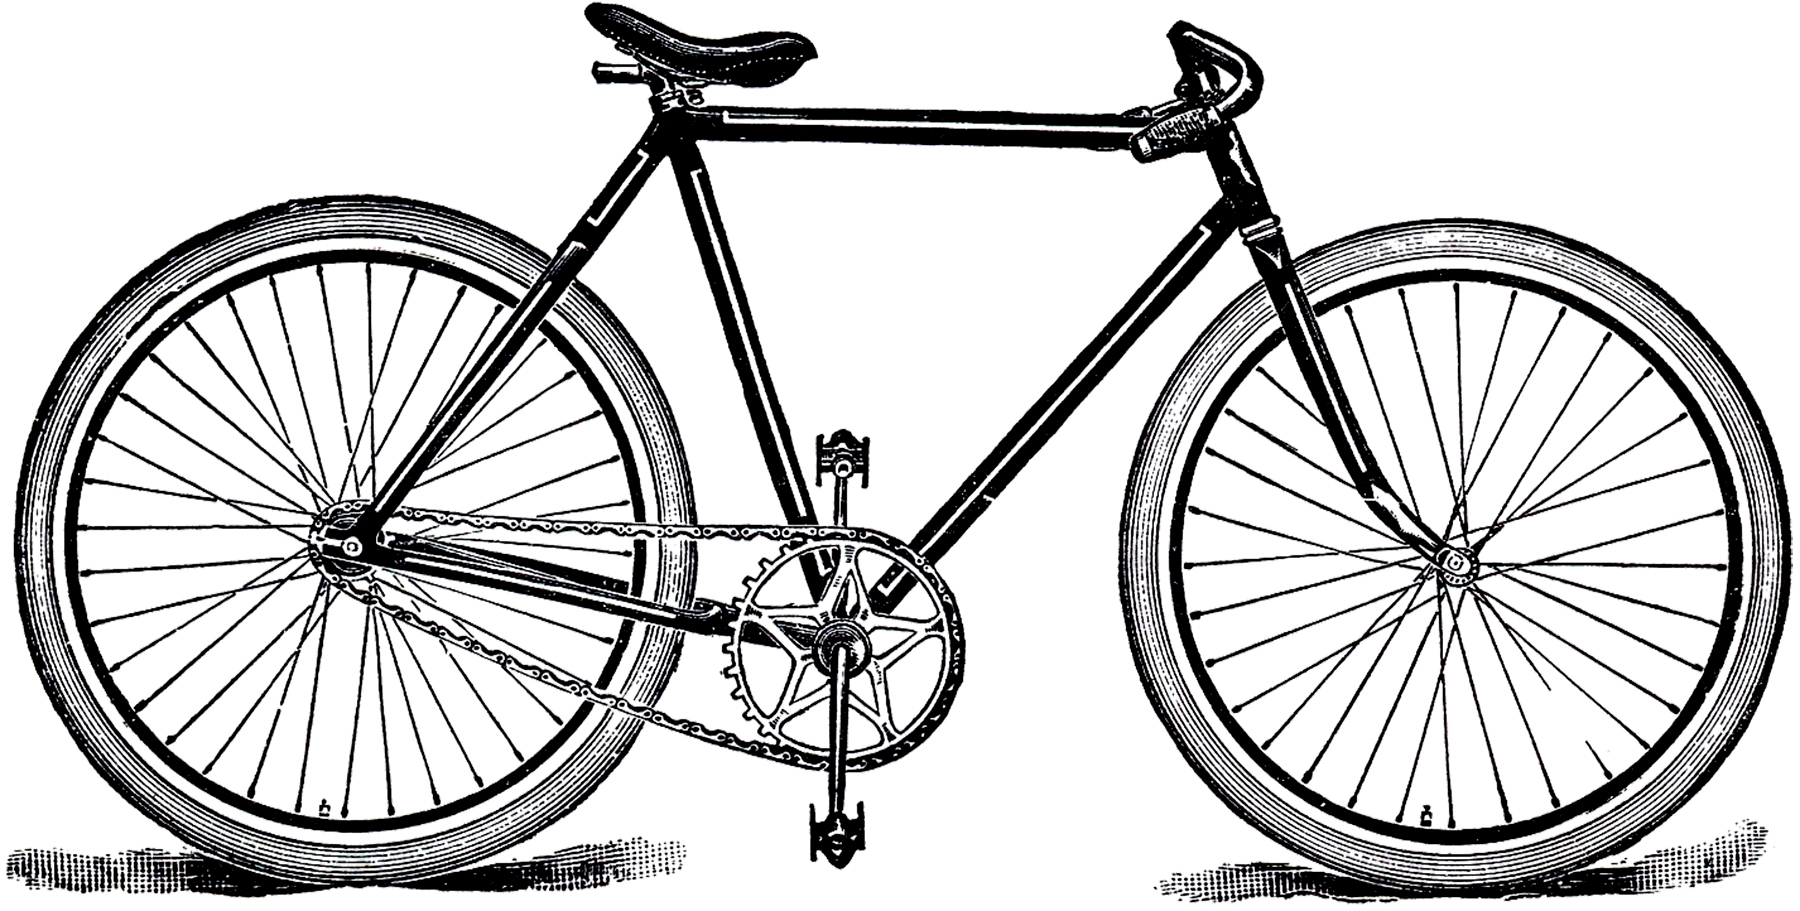 Free Public Domain Bicycle Image